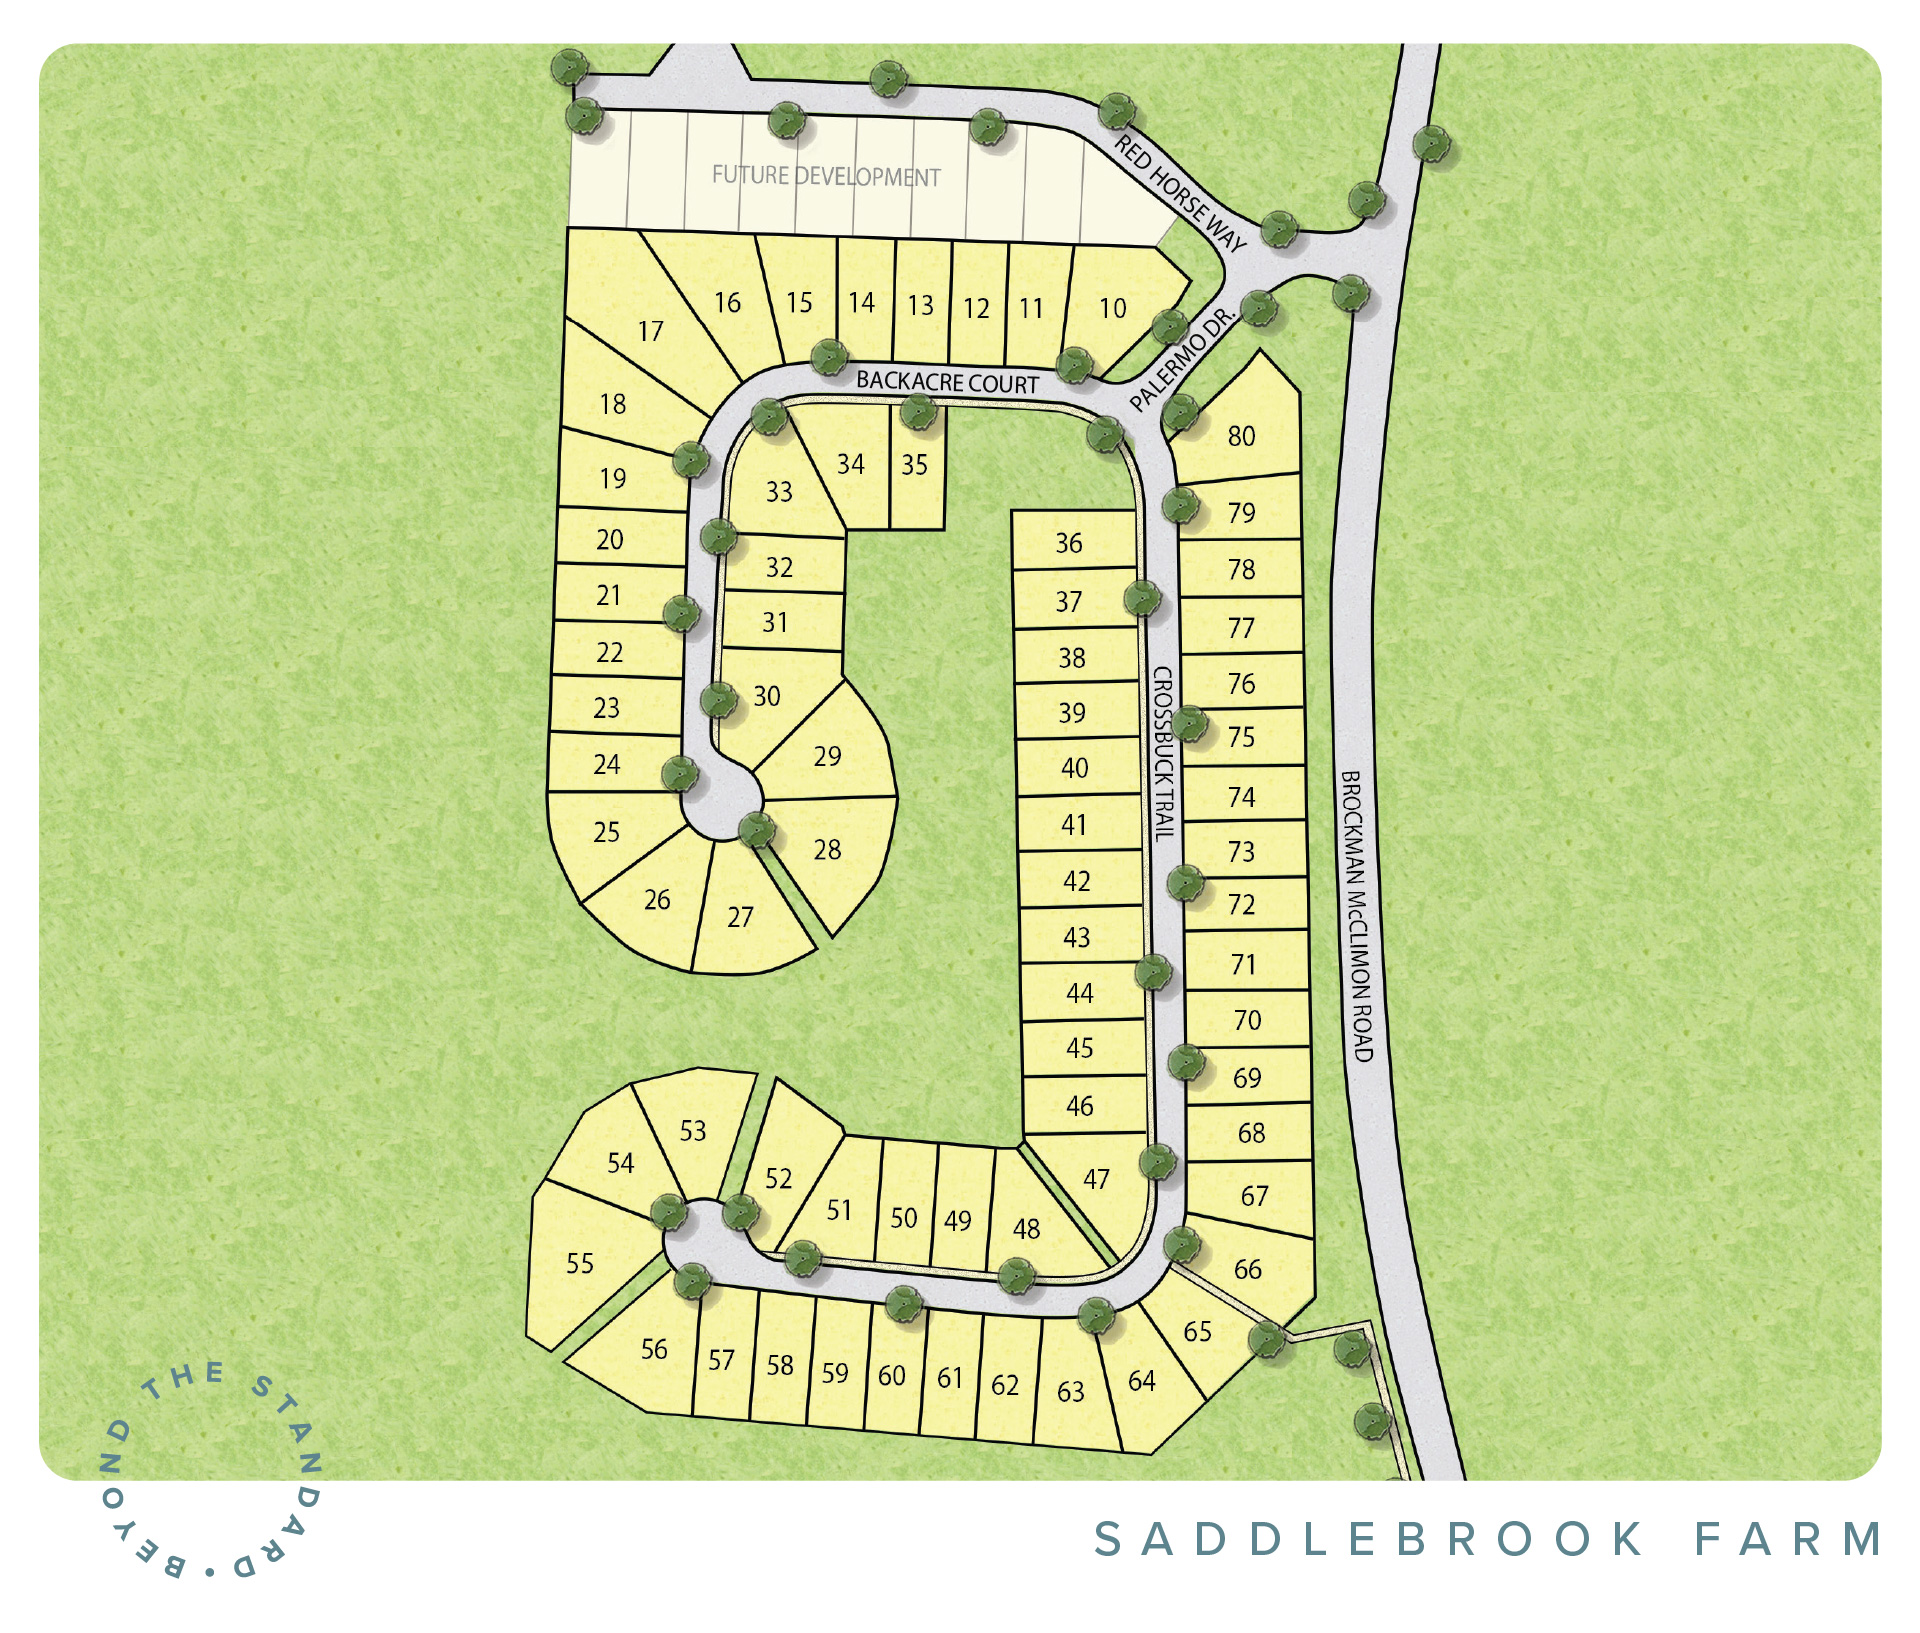 Greer, SC Saddlebrook Farm New Homes